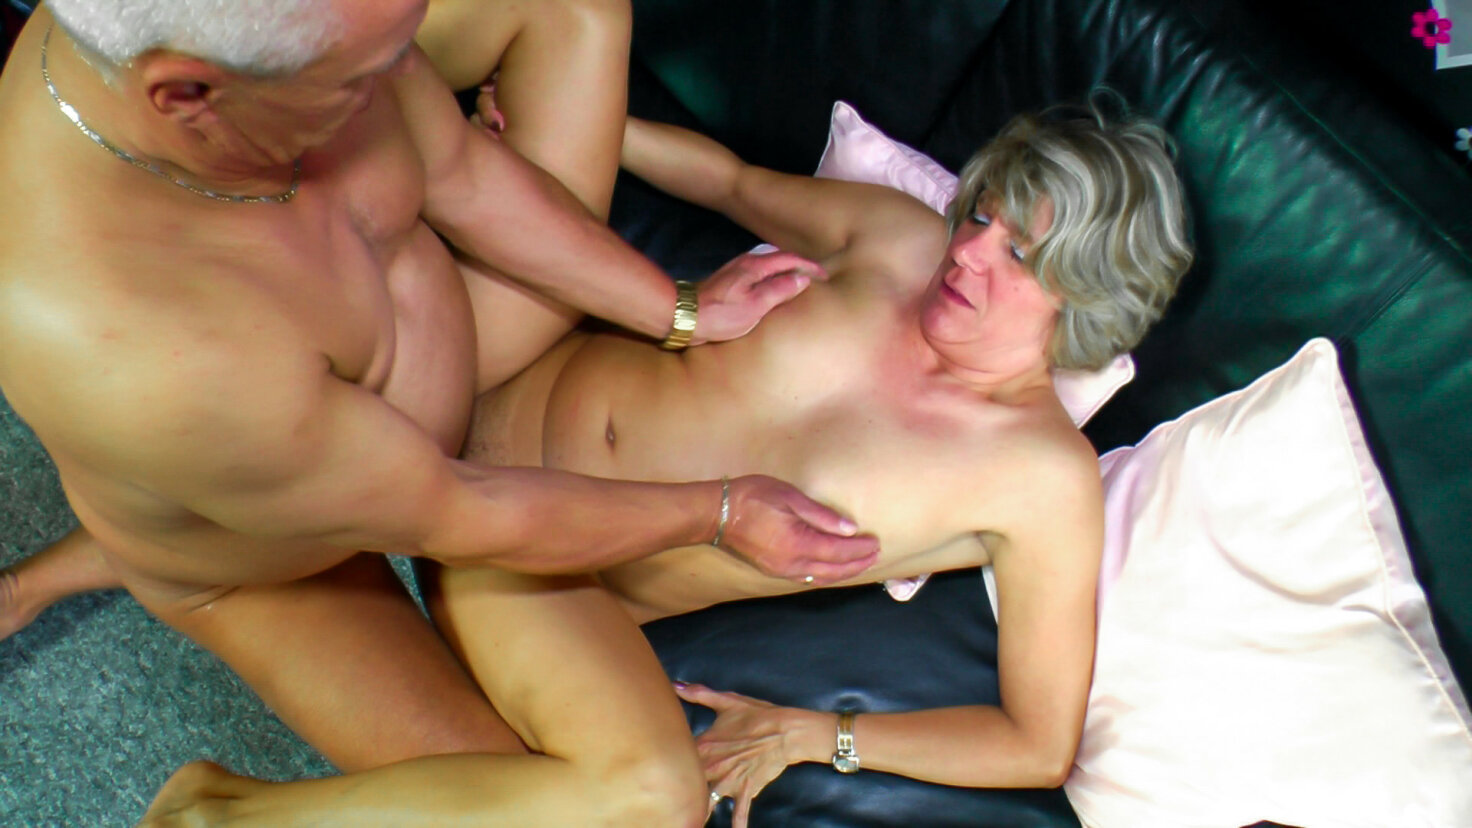 Cute amateur German granny gets cum on tits after hot hard fuck